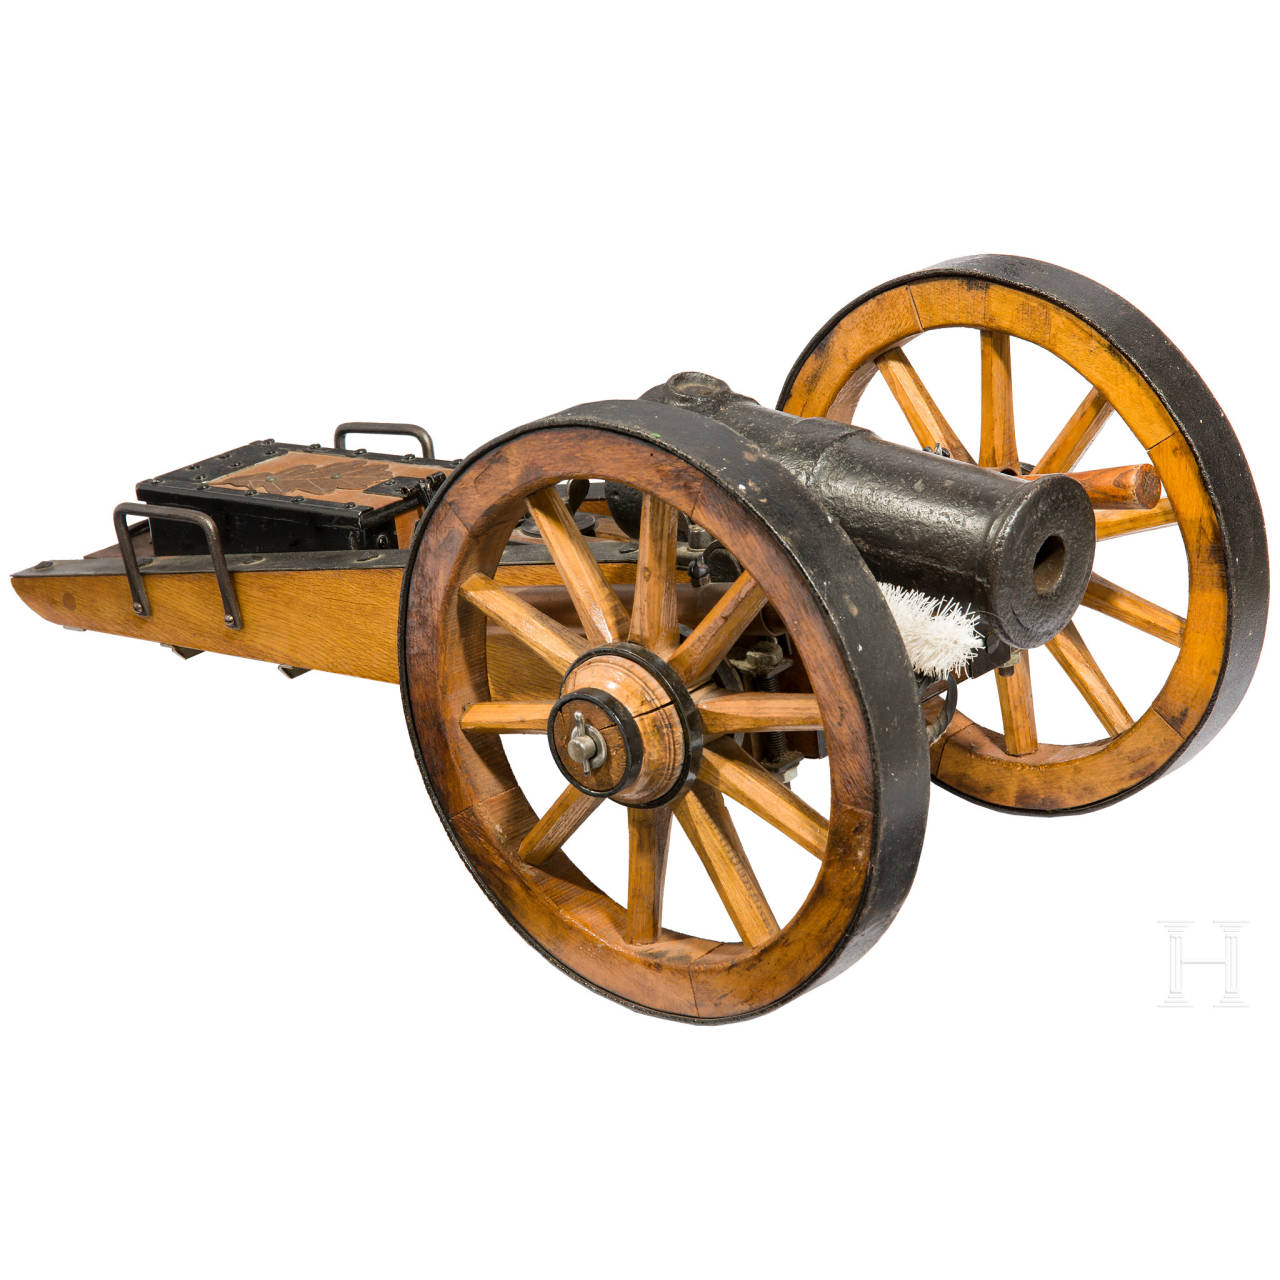 A saluting cannon, collector's replica in the style of the 18th/19th century